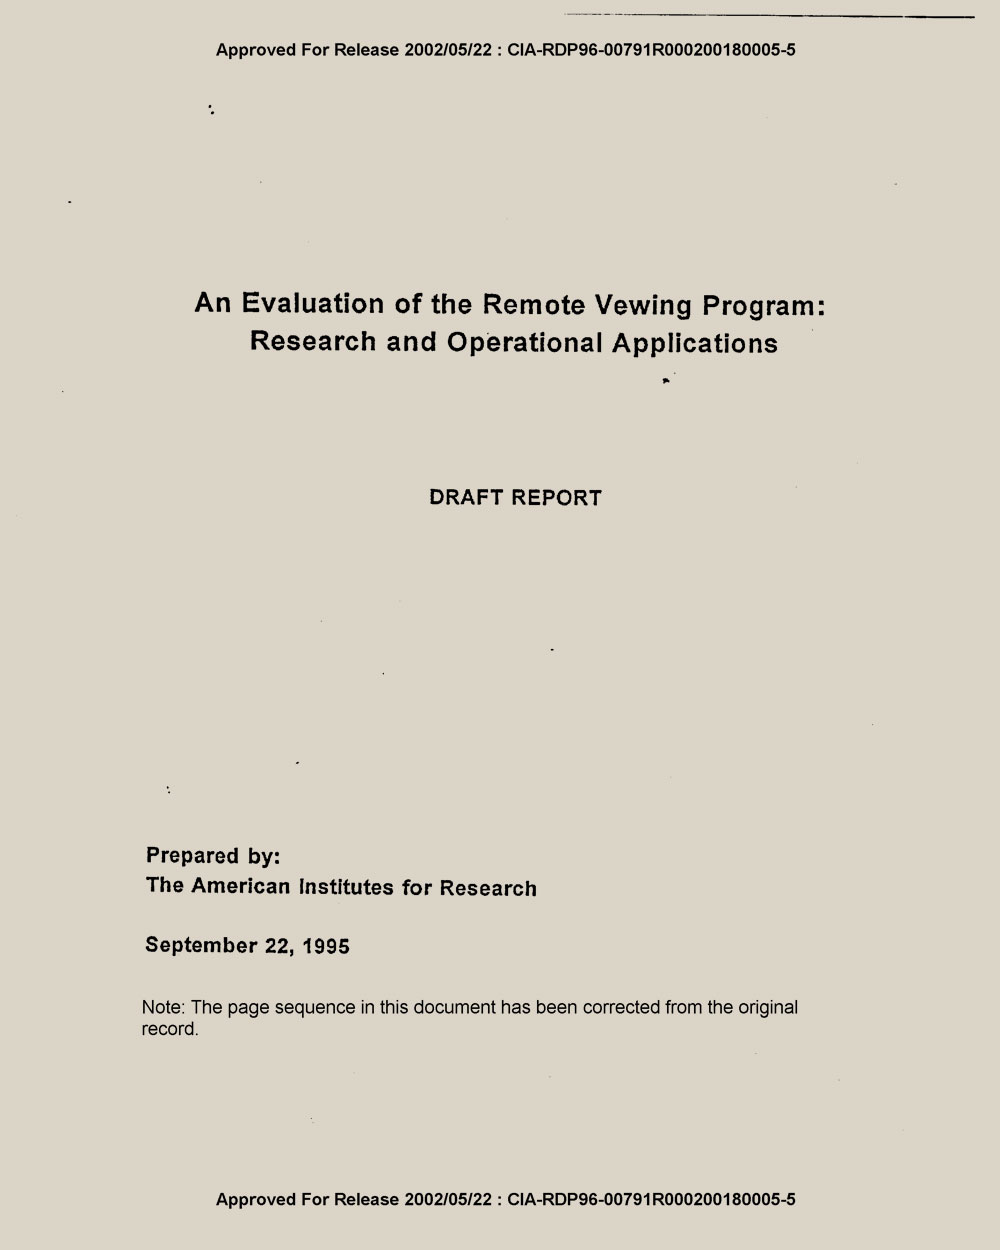 AIR Draft Reports   CIA document